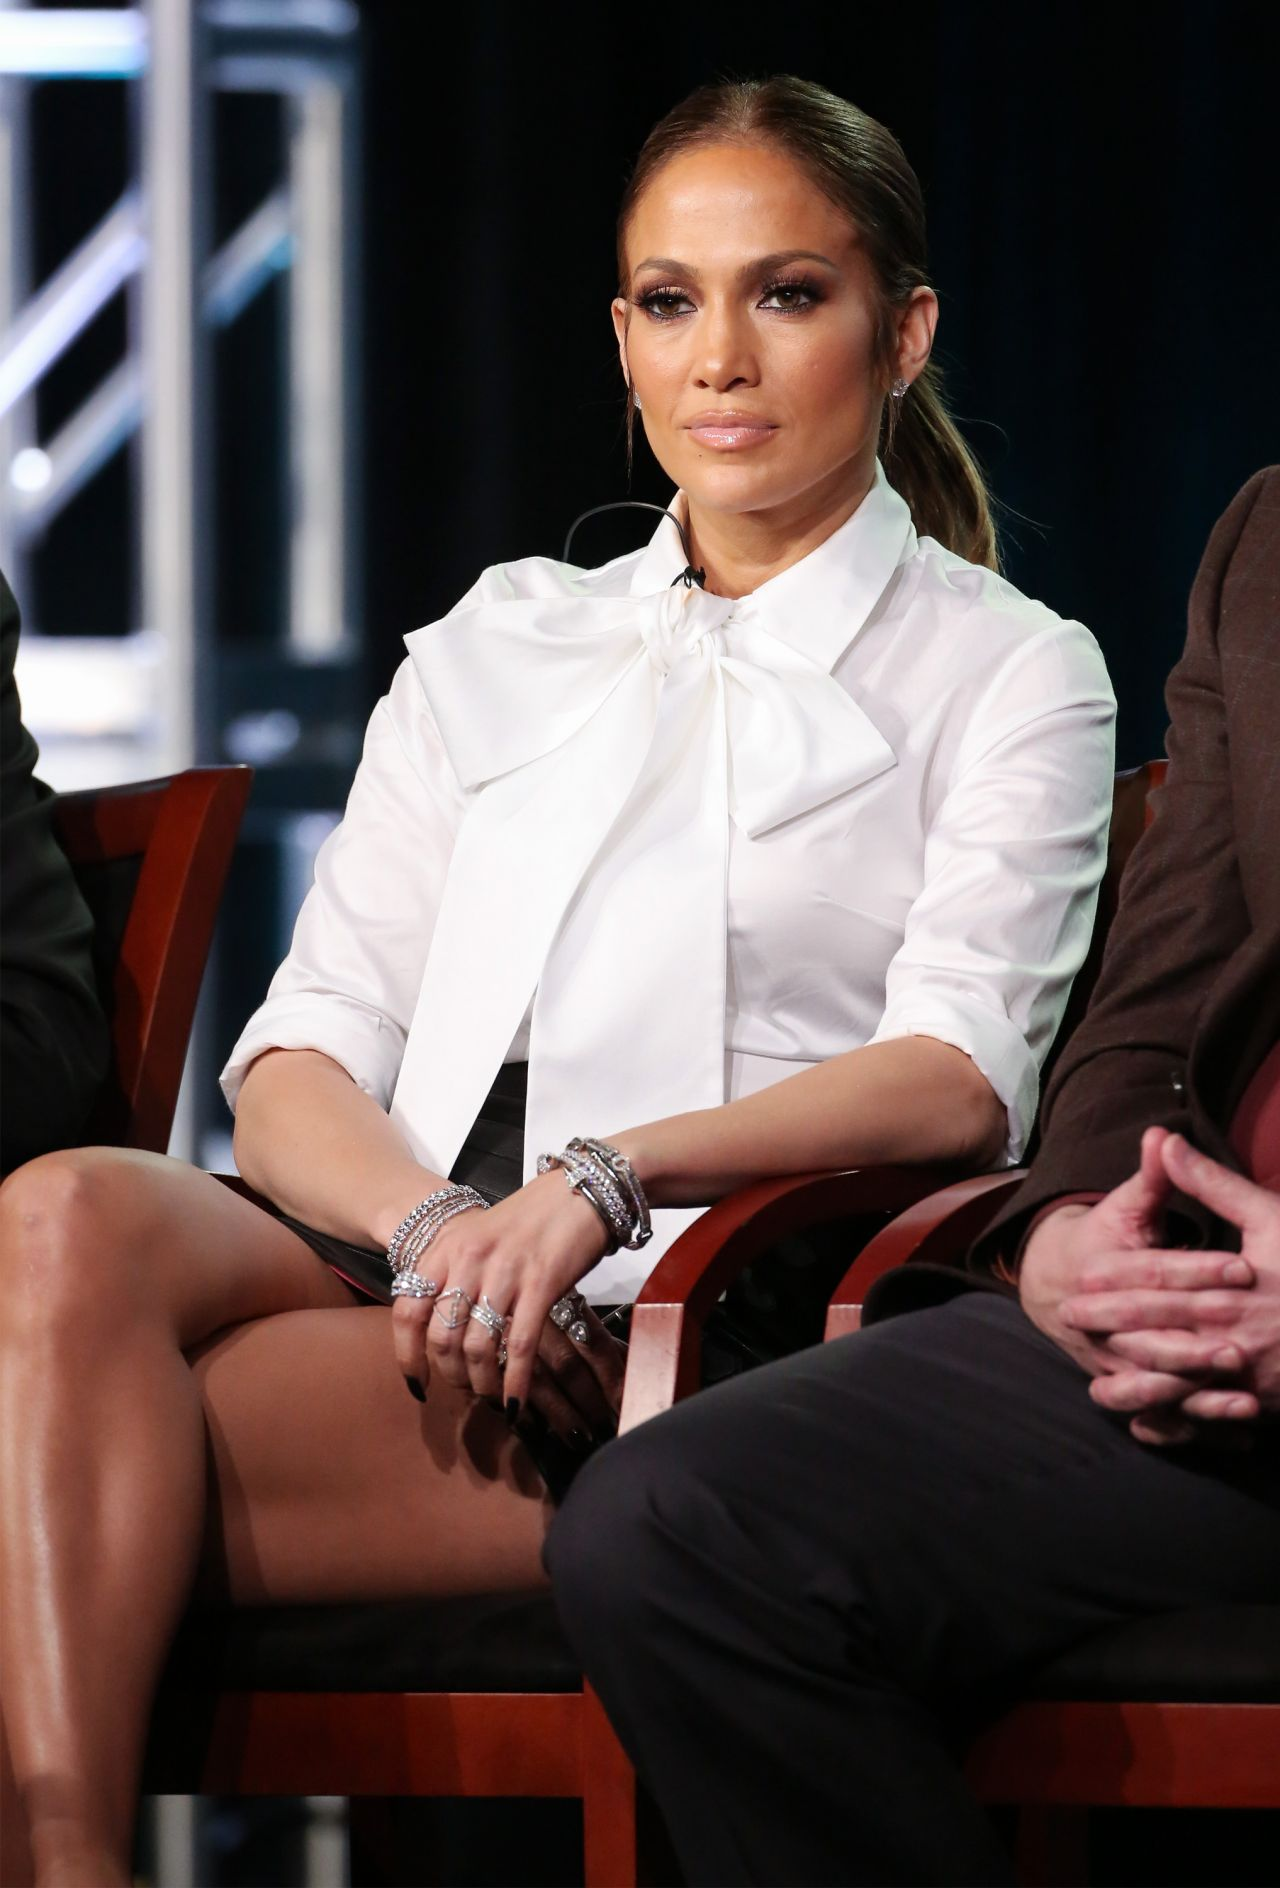 Jennifer Lopez looking hot during press tour